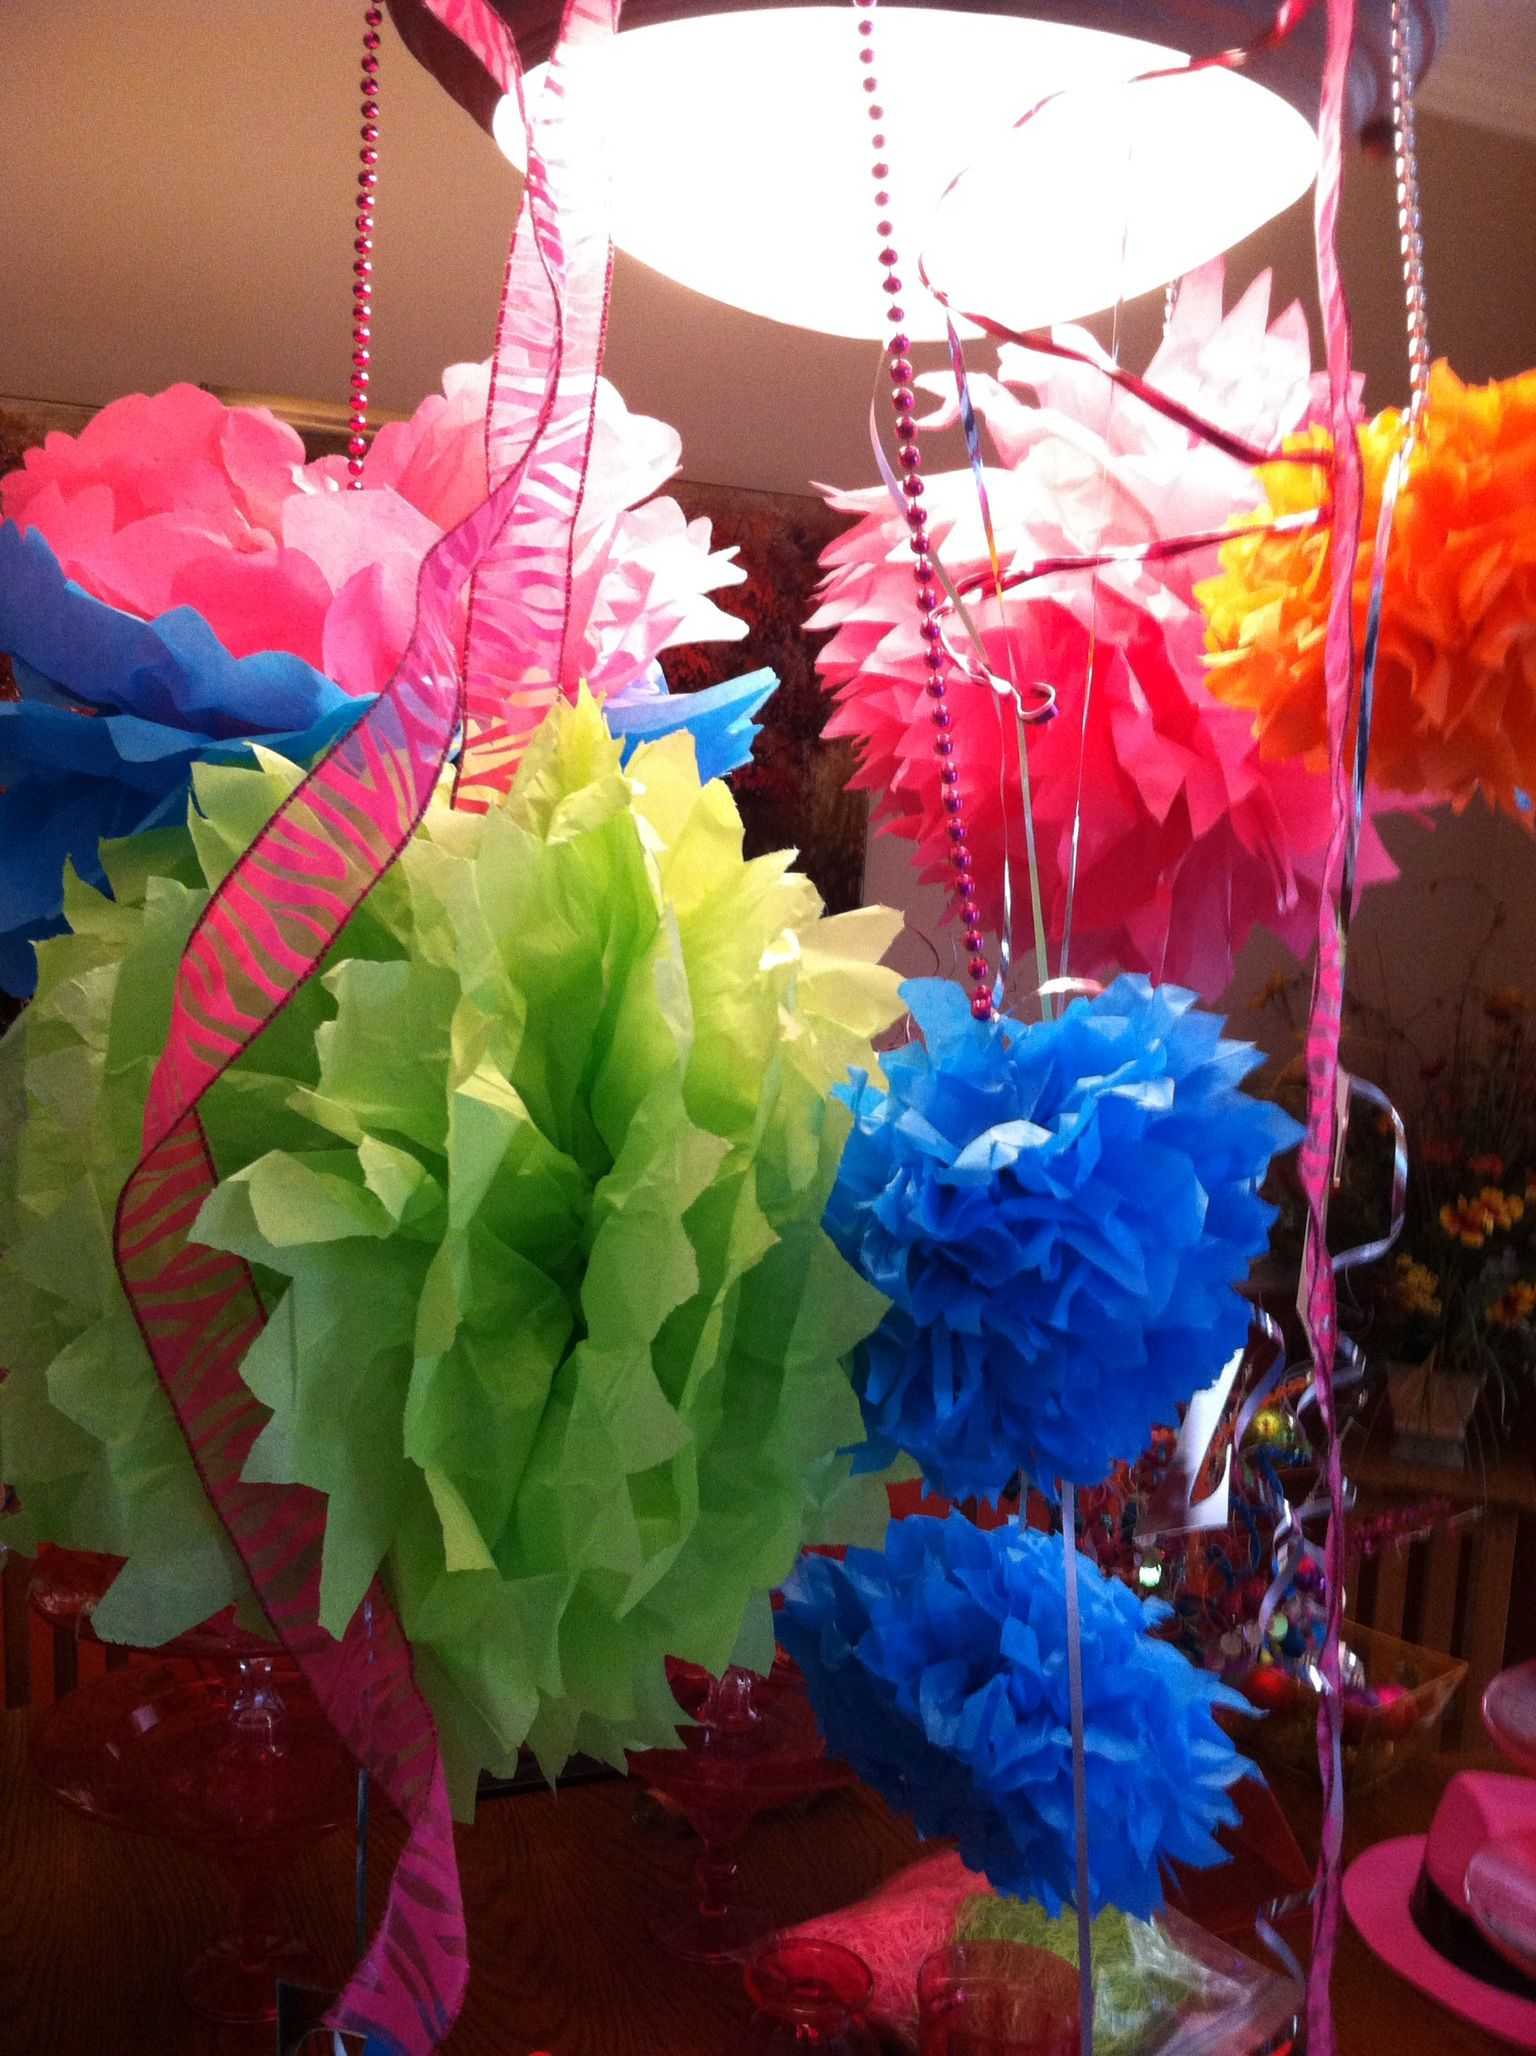 We made these puffs with tissue paper and hung with ribbon and beads.